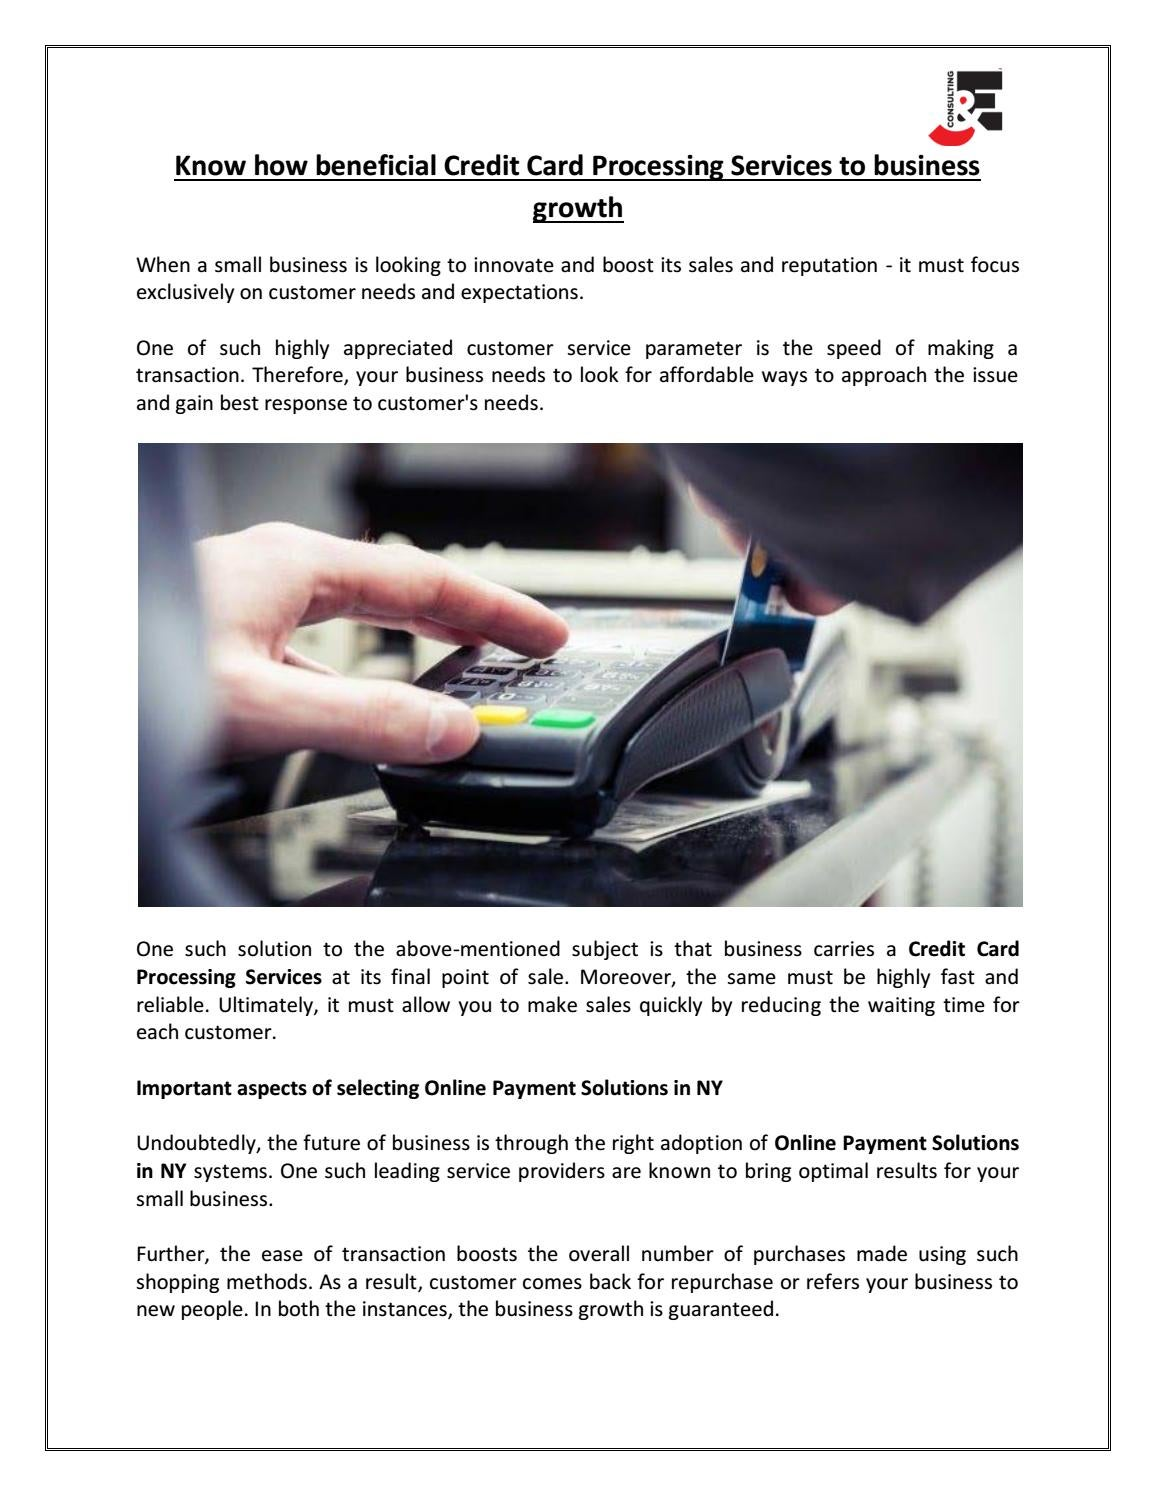 Know How Beneficial Credit Card Processing Services To Business Growth By J E Business Consulting Llc Issuu